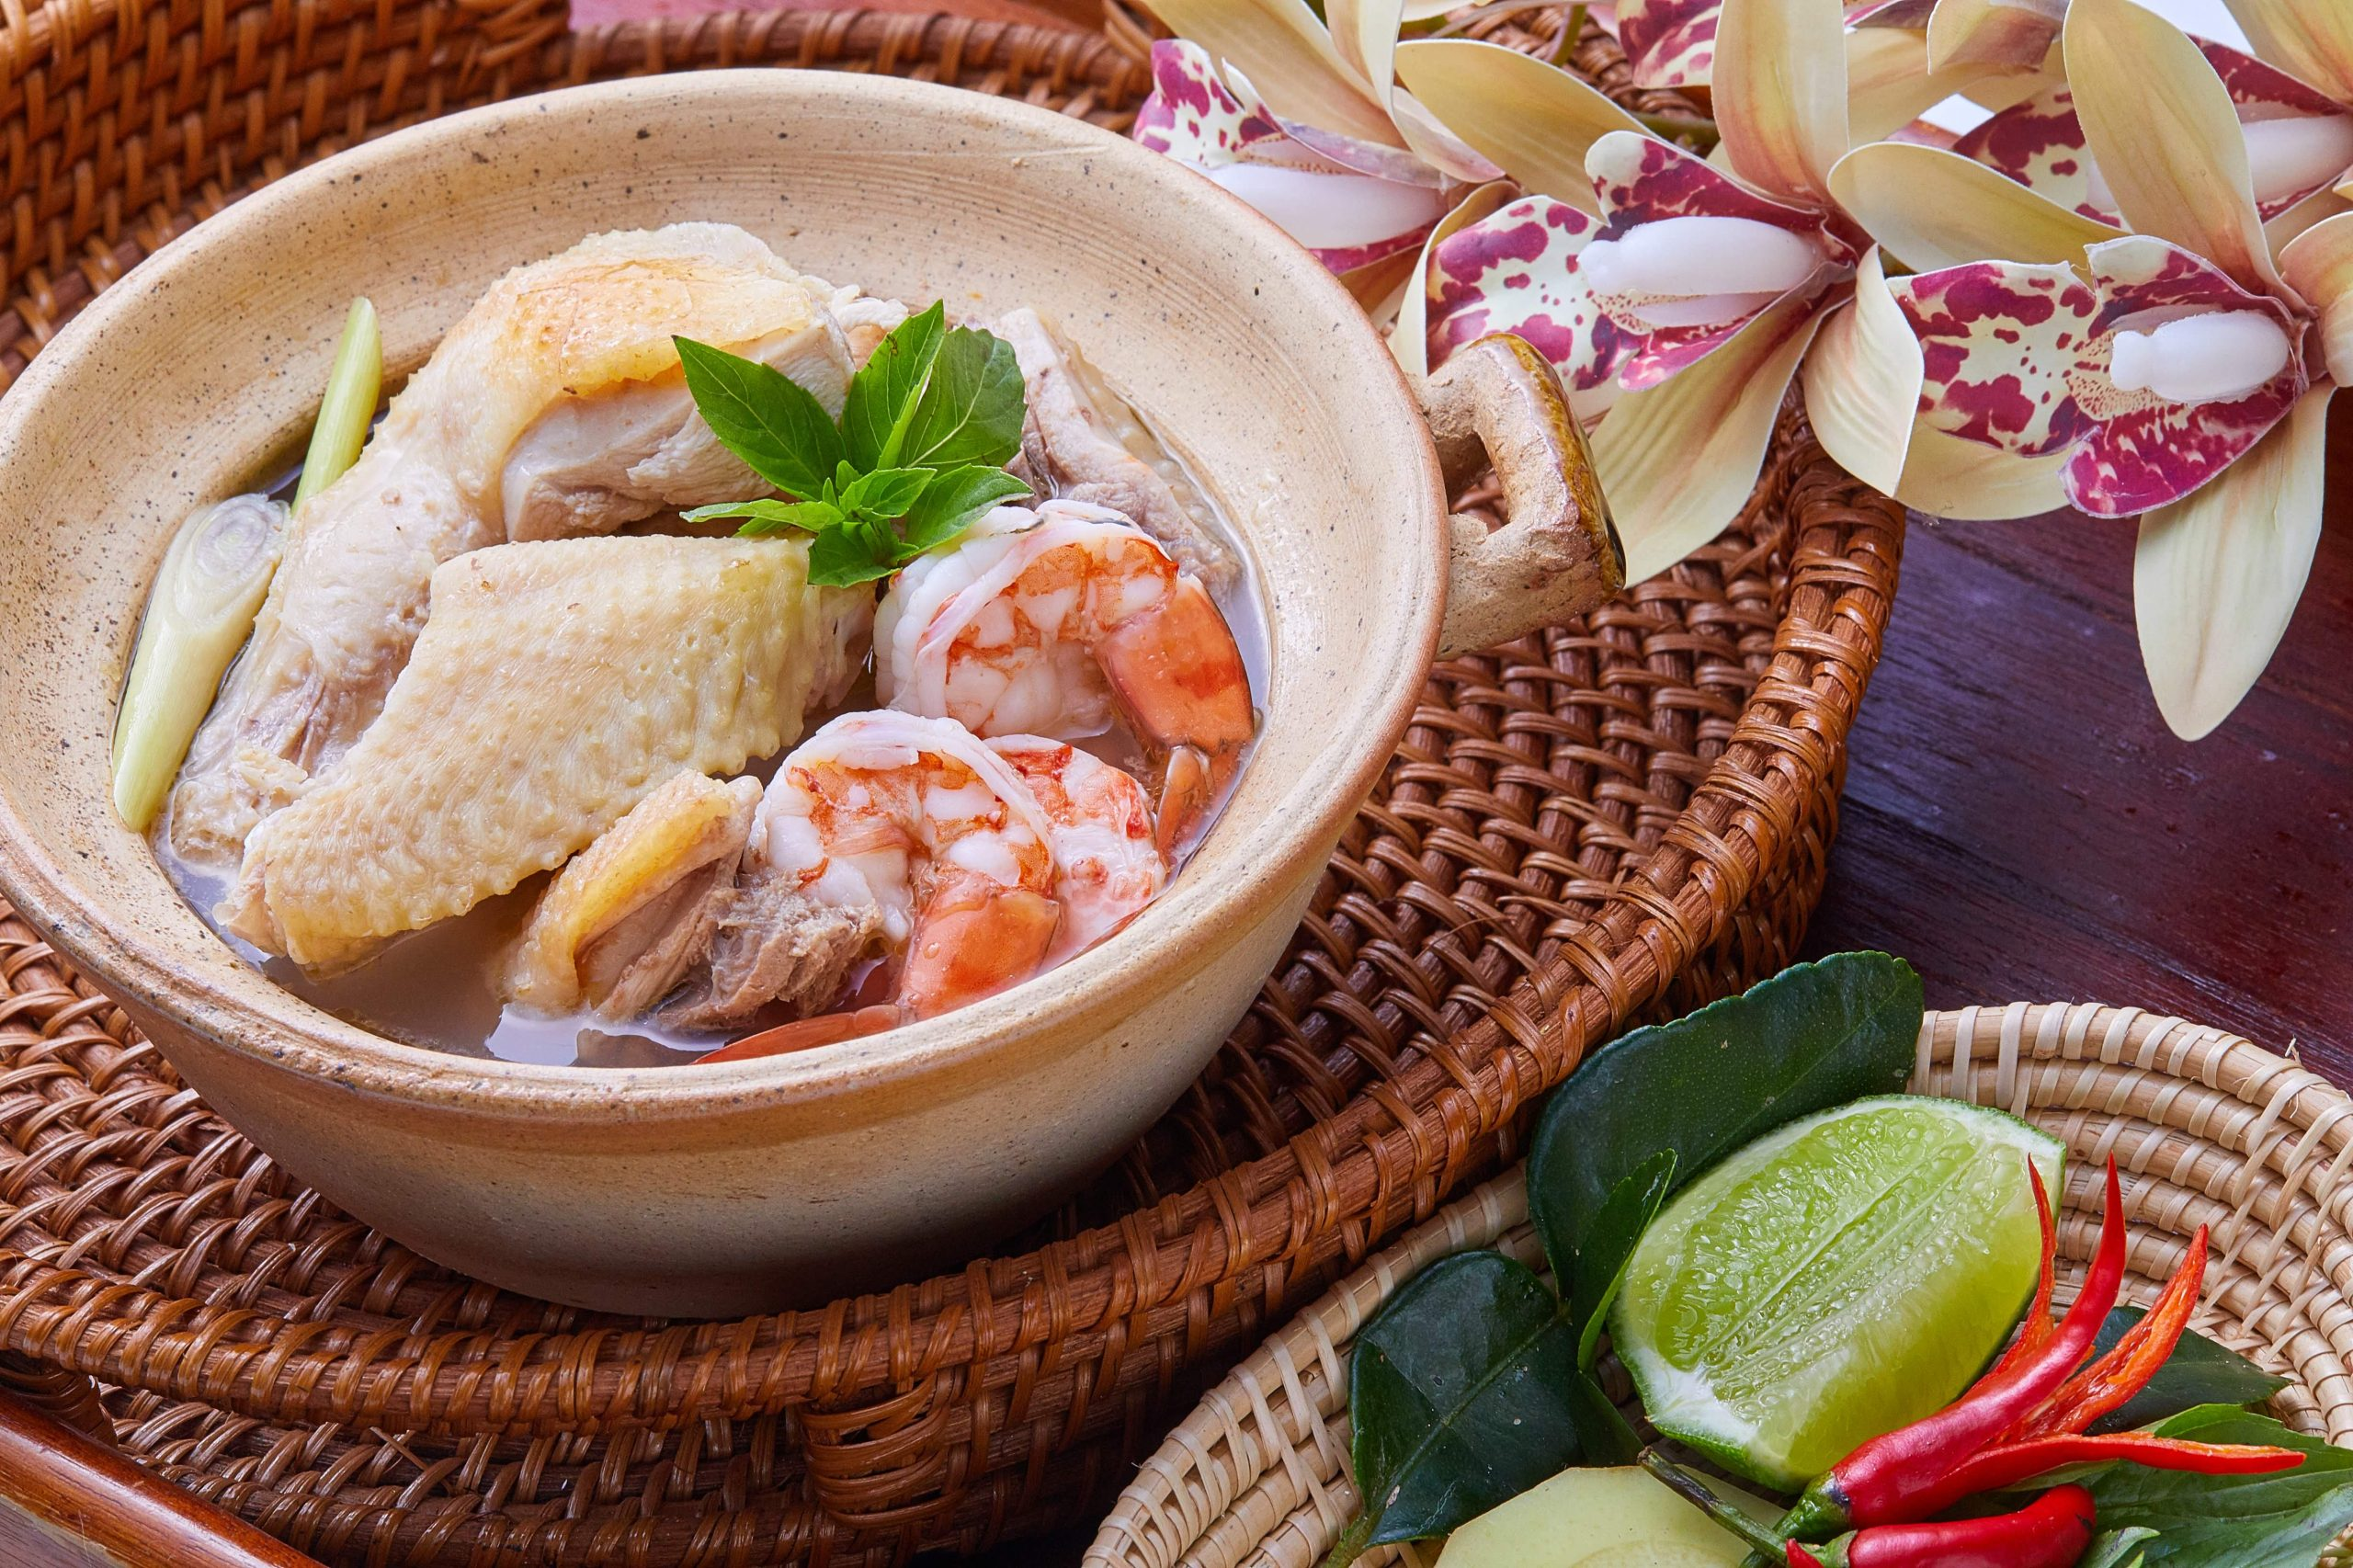 Chicken sour soup with shrimps